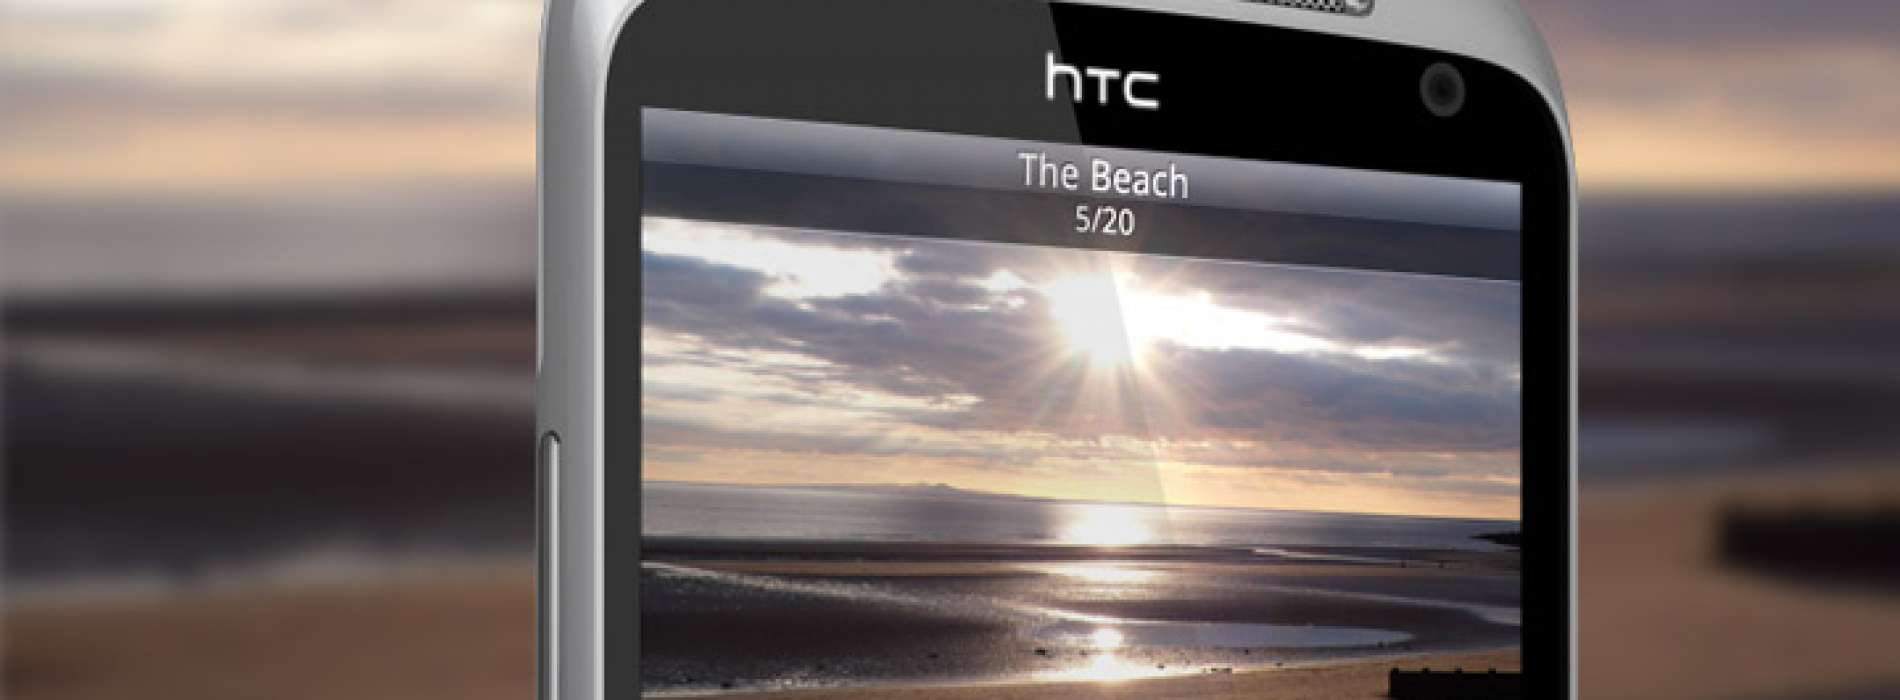 HTC: 2012 devices get top priority for Android 4.1 update